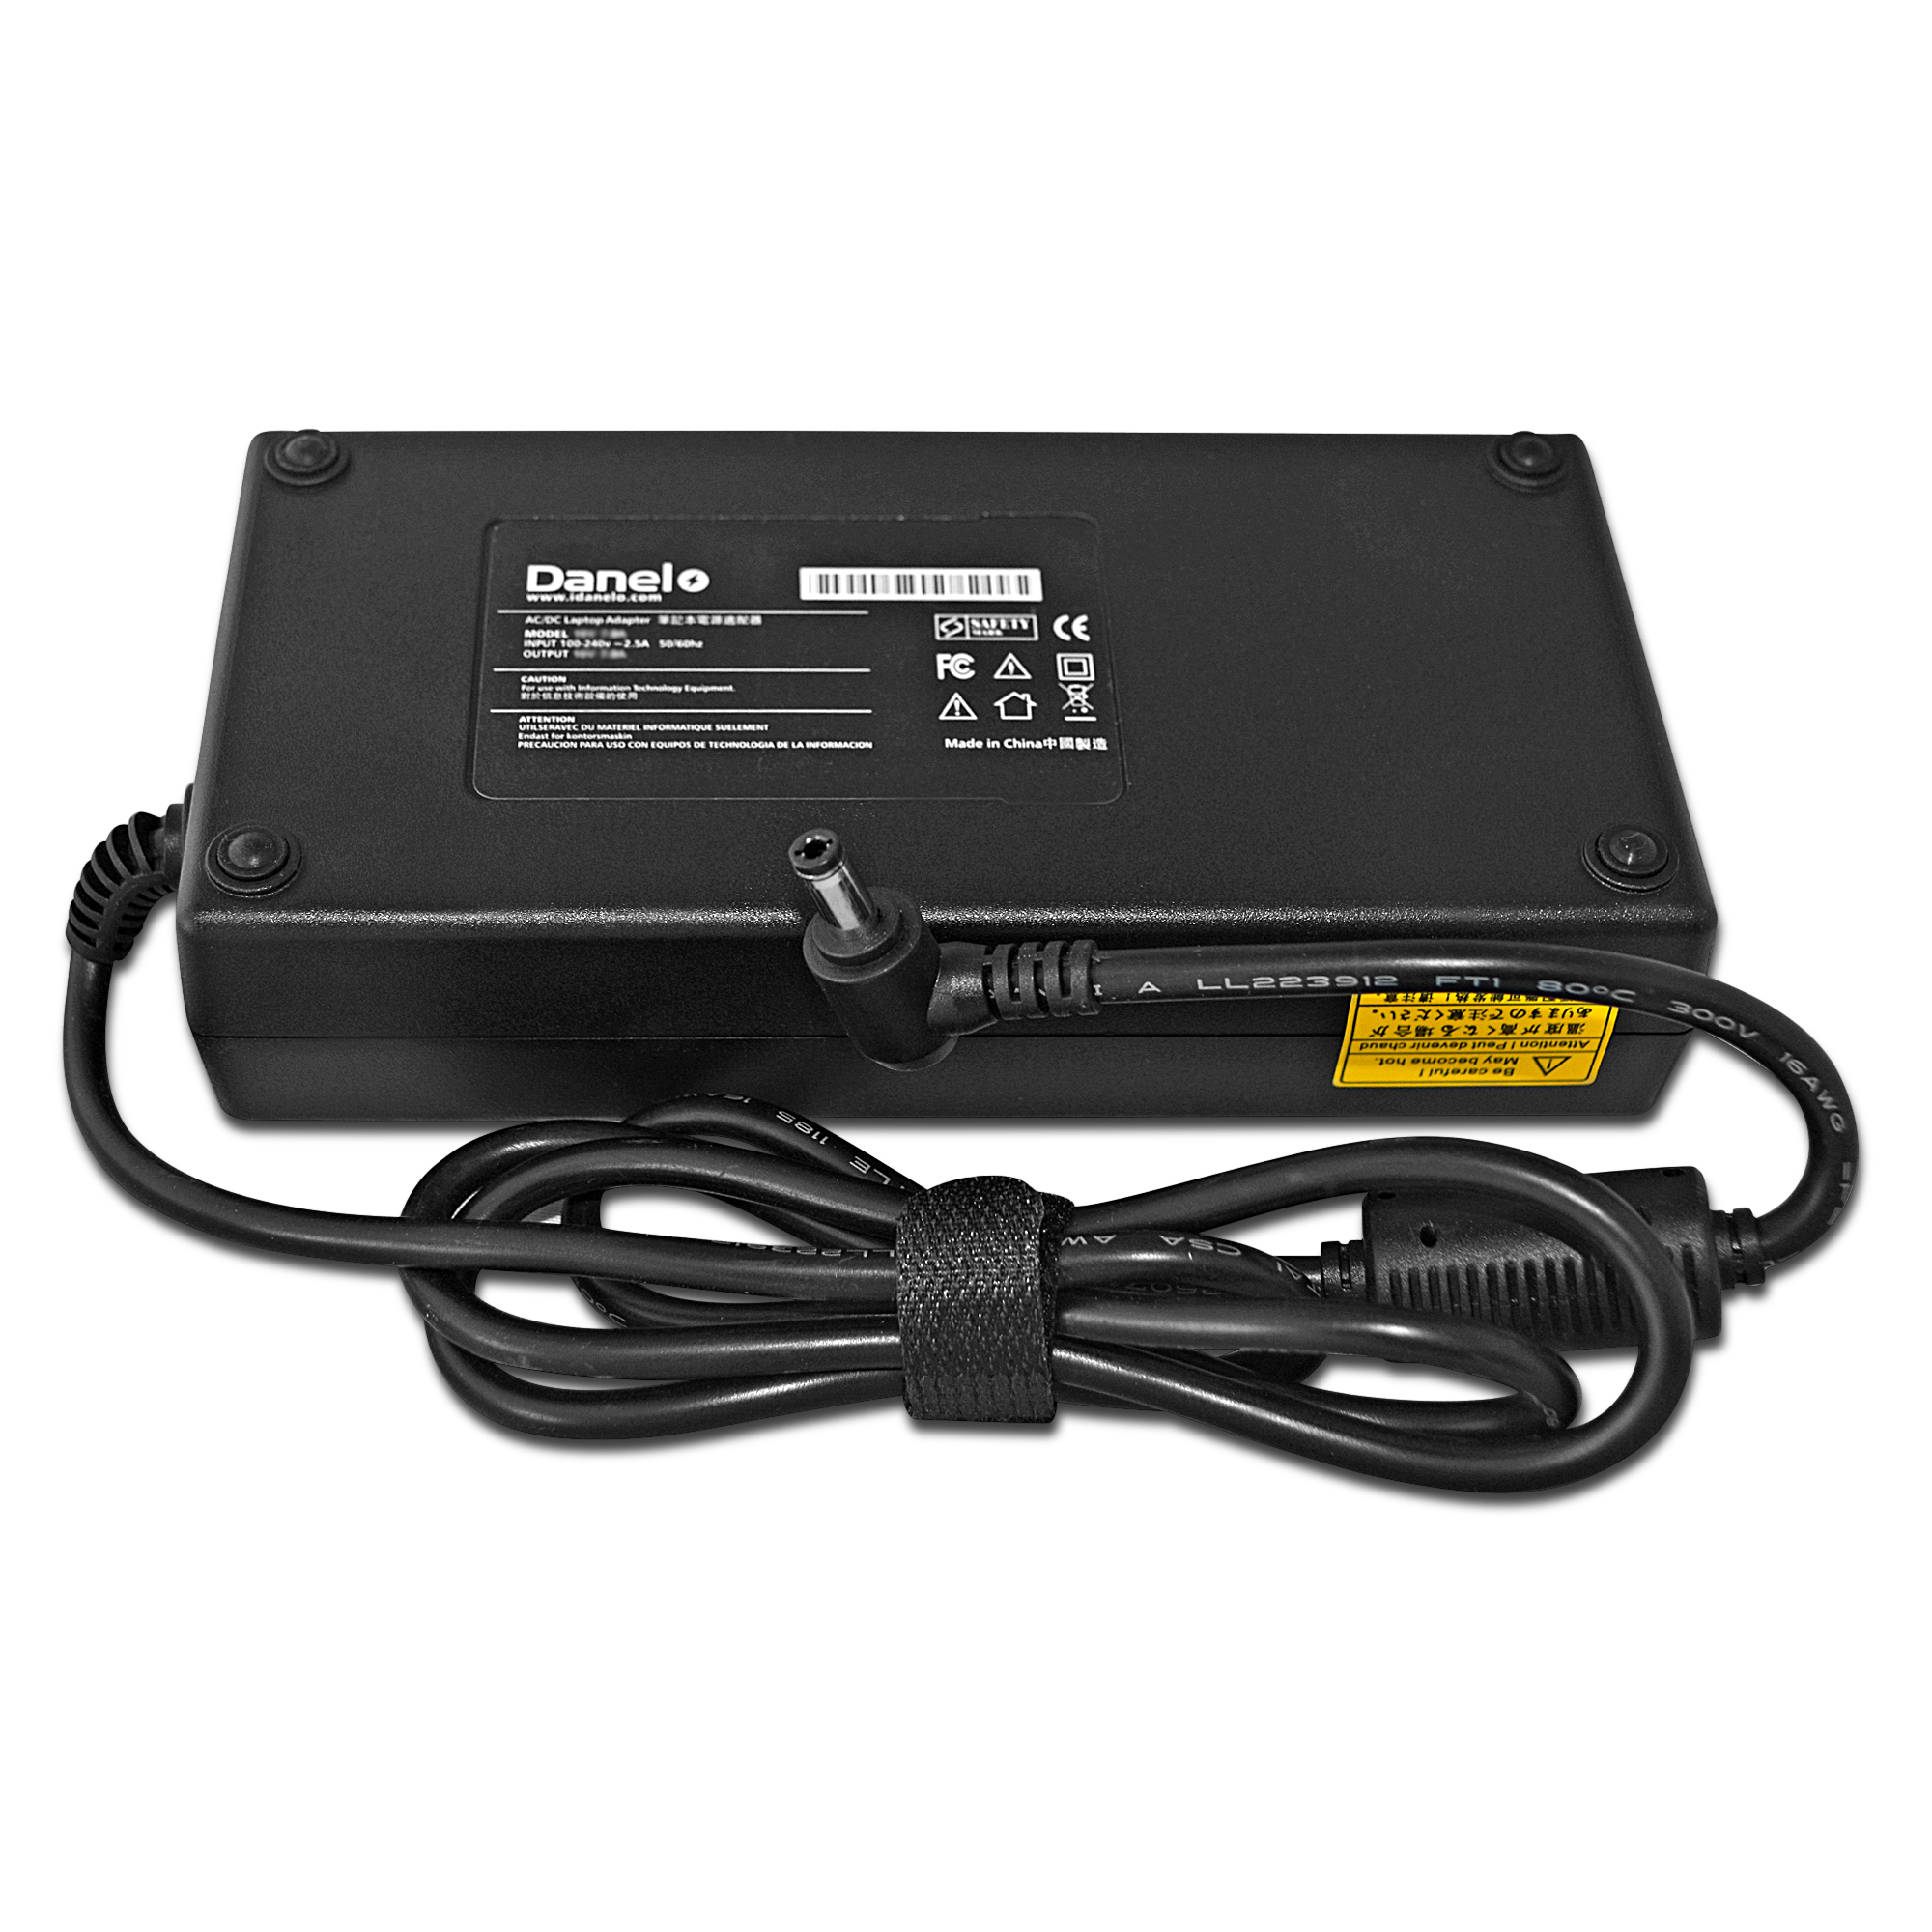 Asus Part Number Adp-180eb Laptop Charger